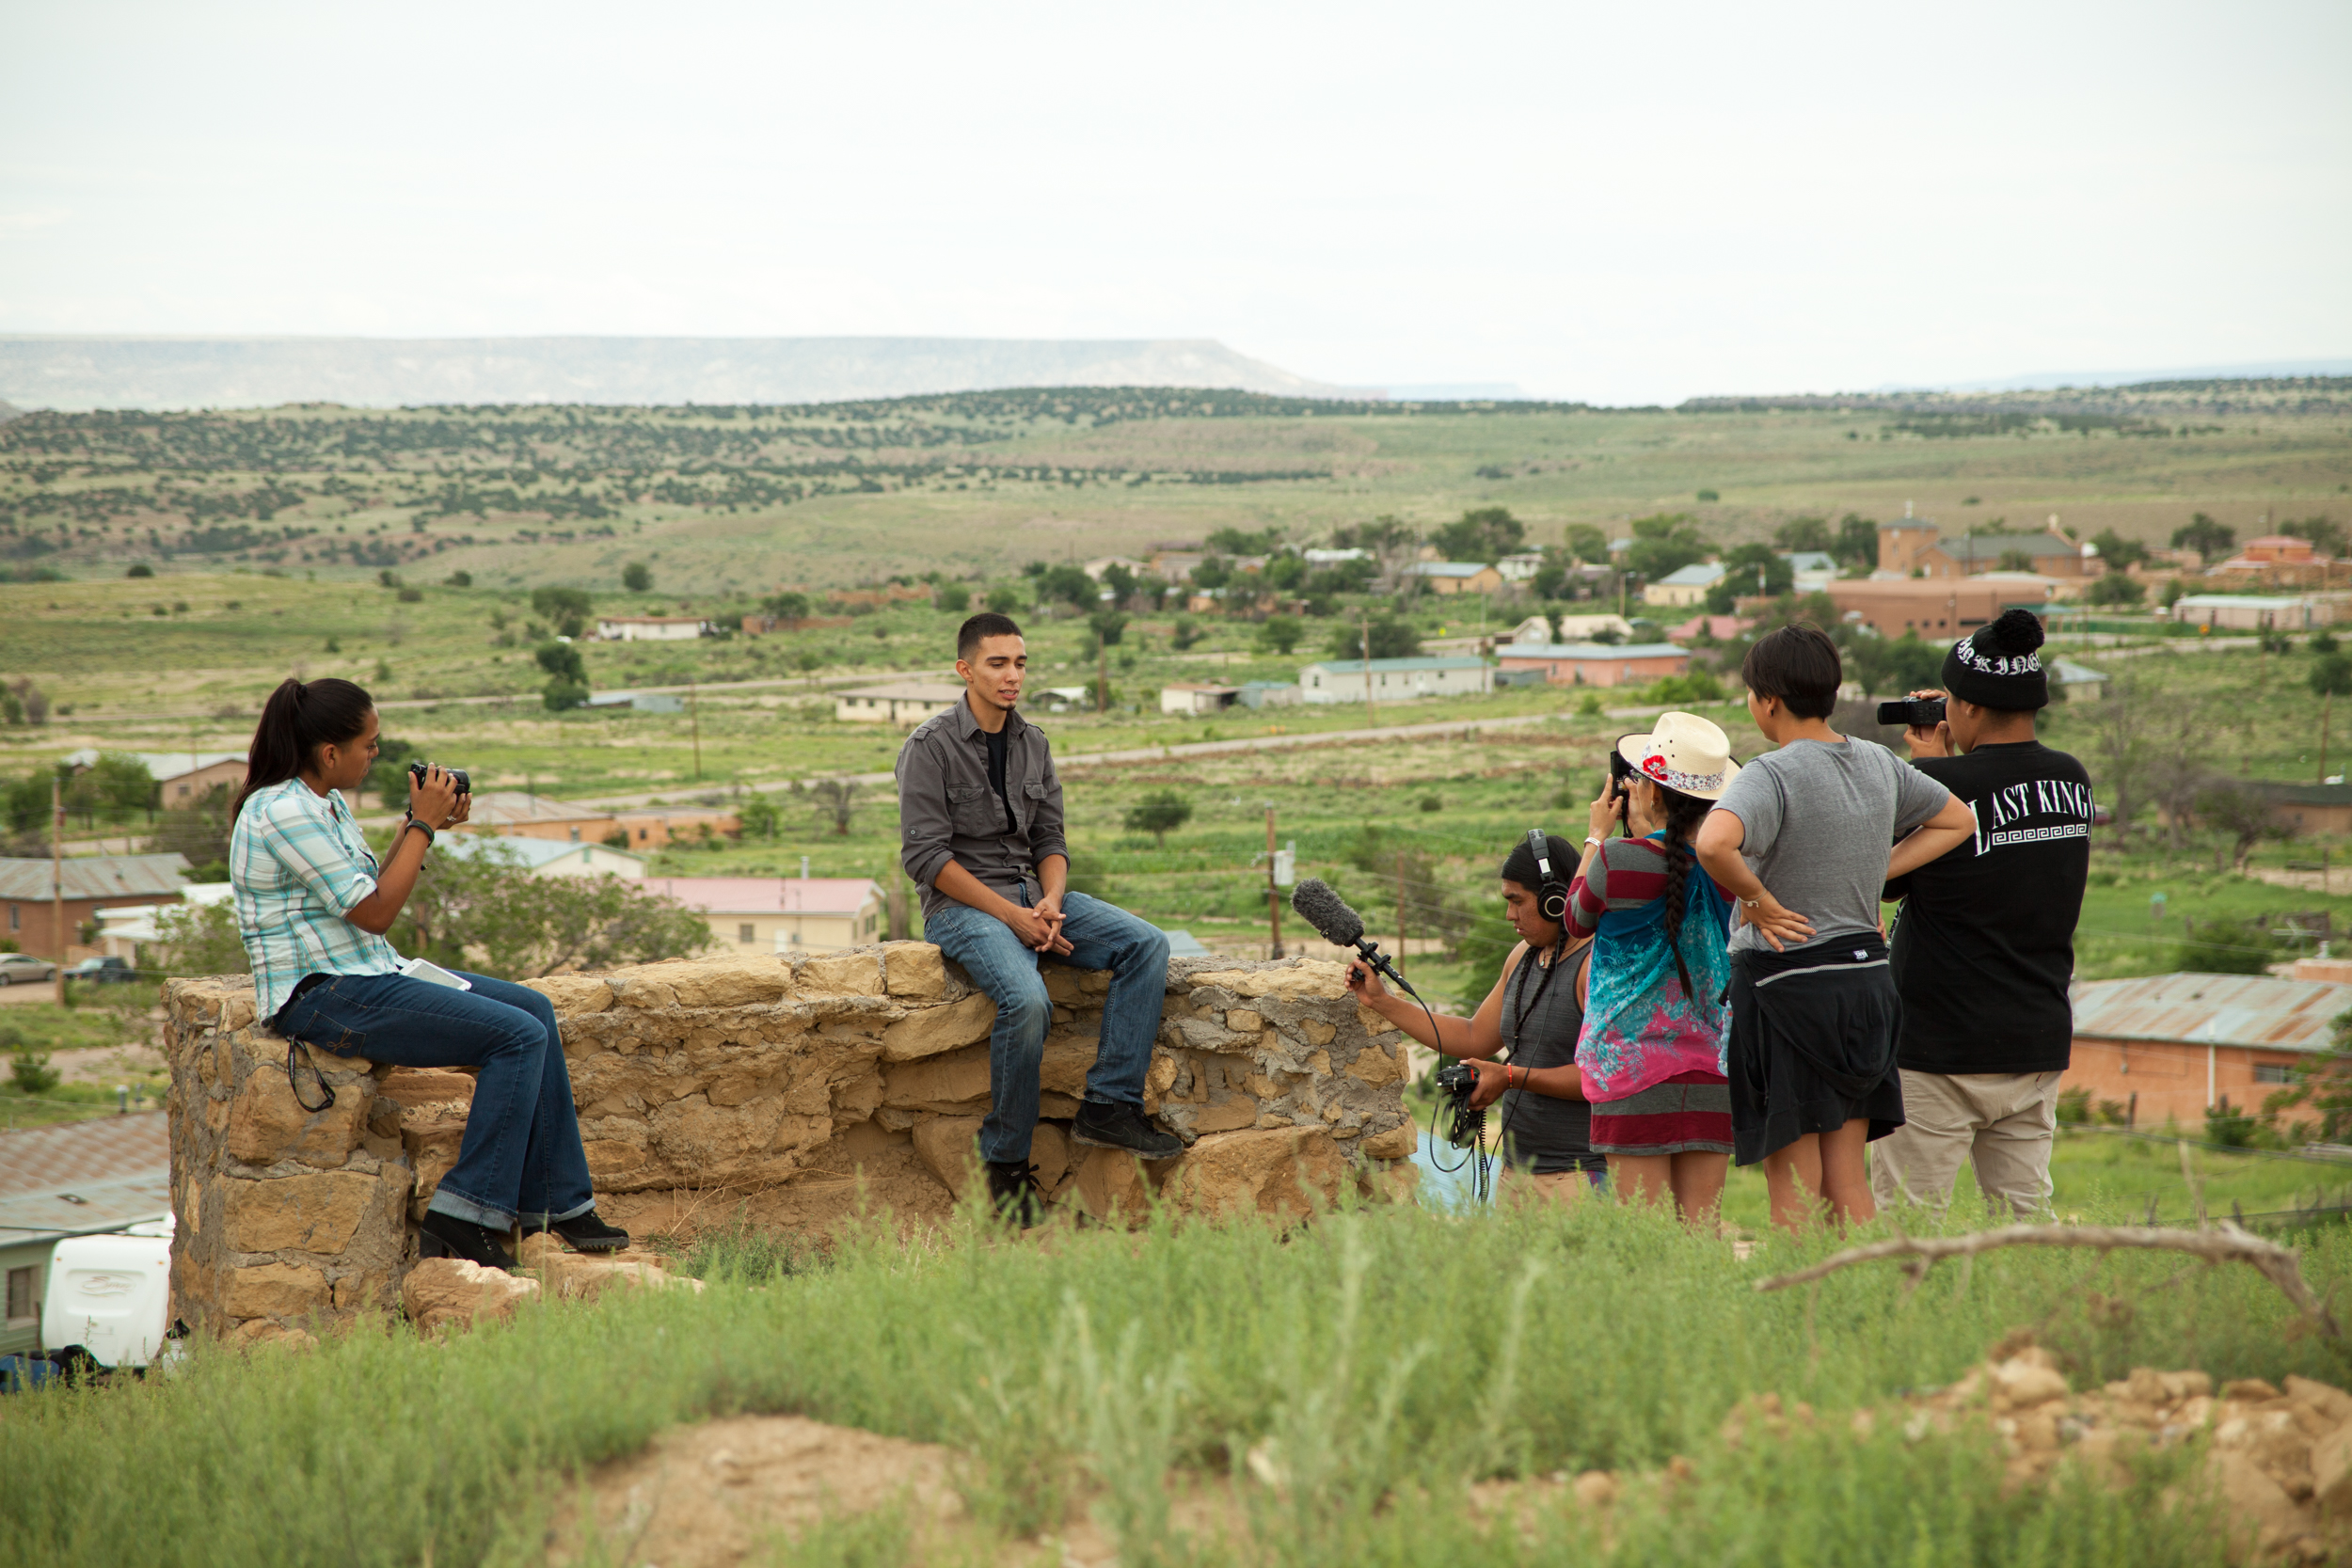 In Kawaik (Laguna Pueblo), Pueblo and Zapotec youth of the Yakanal youth culture exchange film each other during a hands-on media training that resulted in the quadlingual short film Ha' Agua Water Tz'itz.